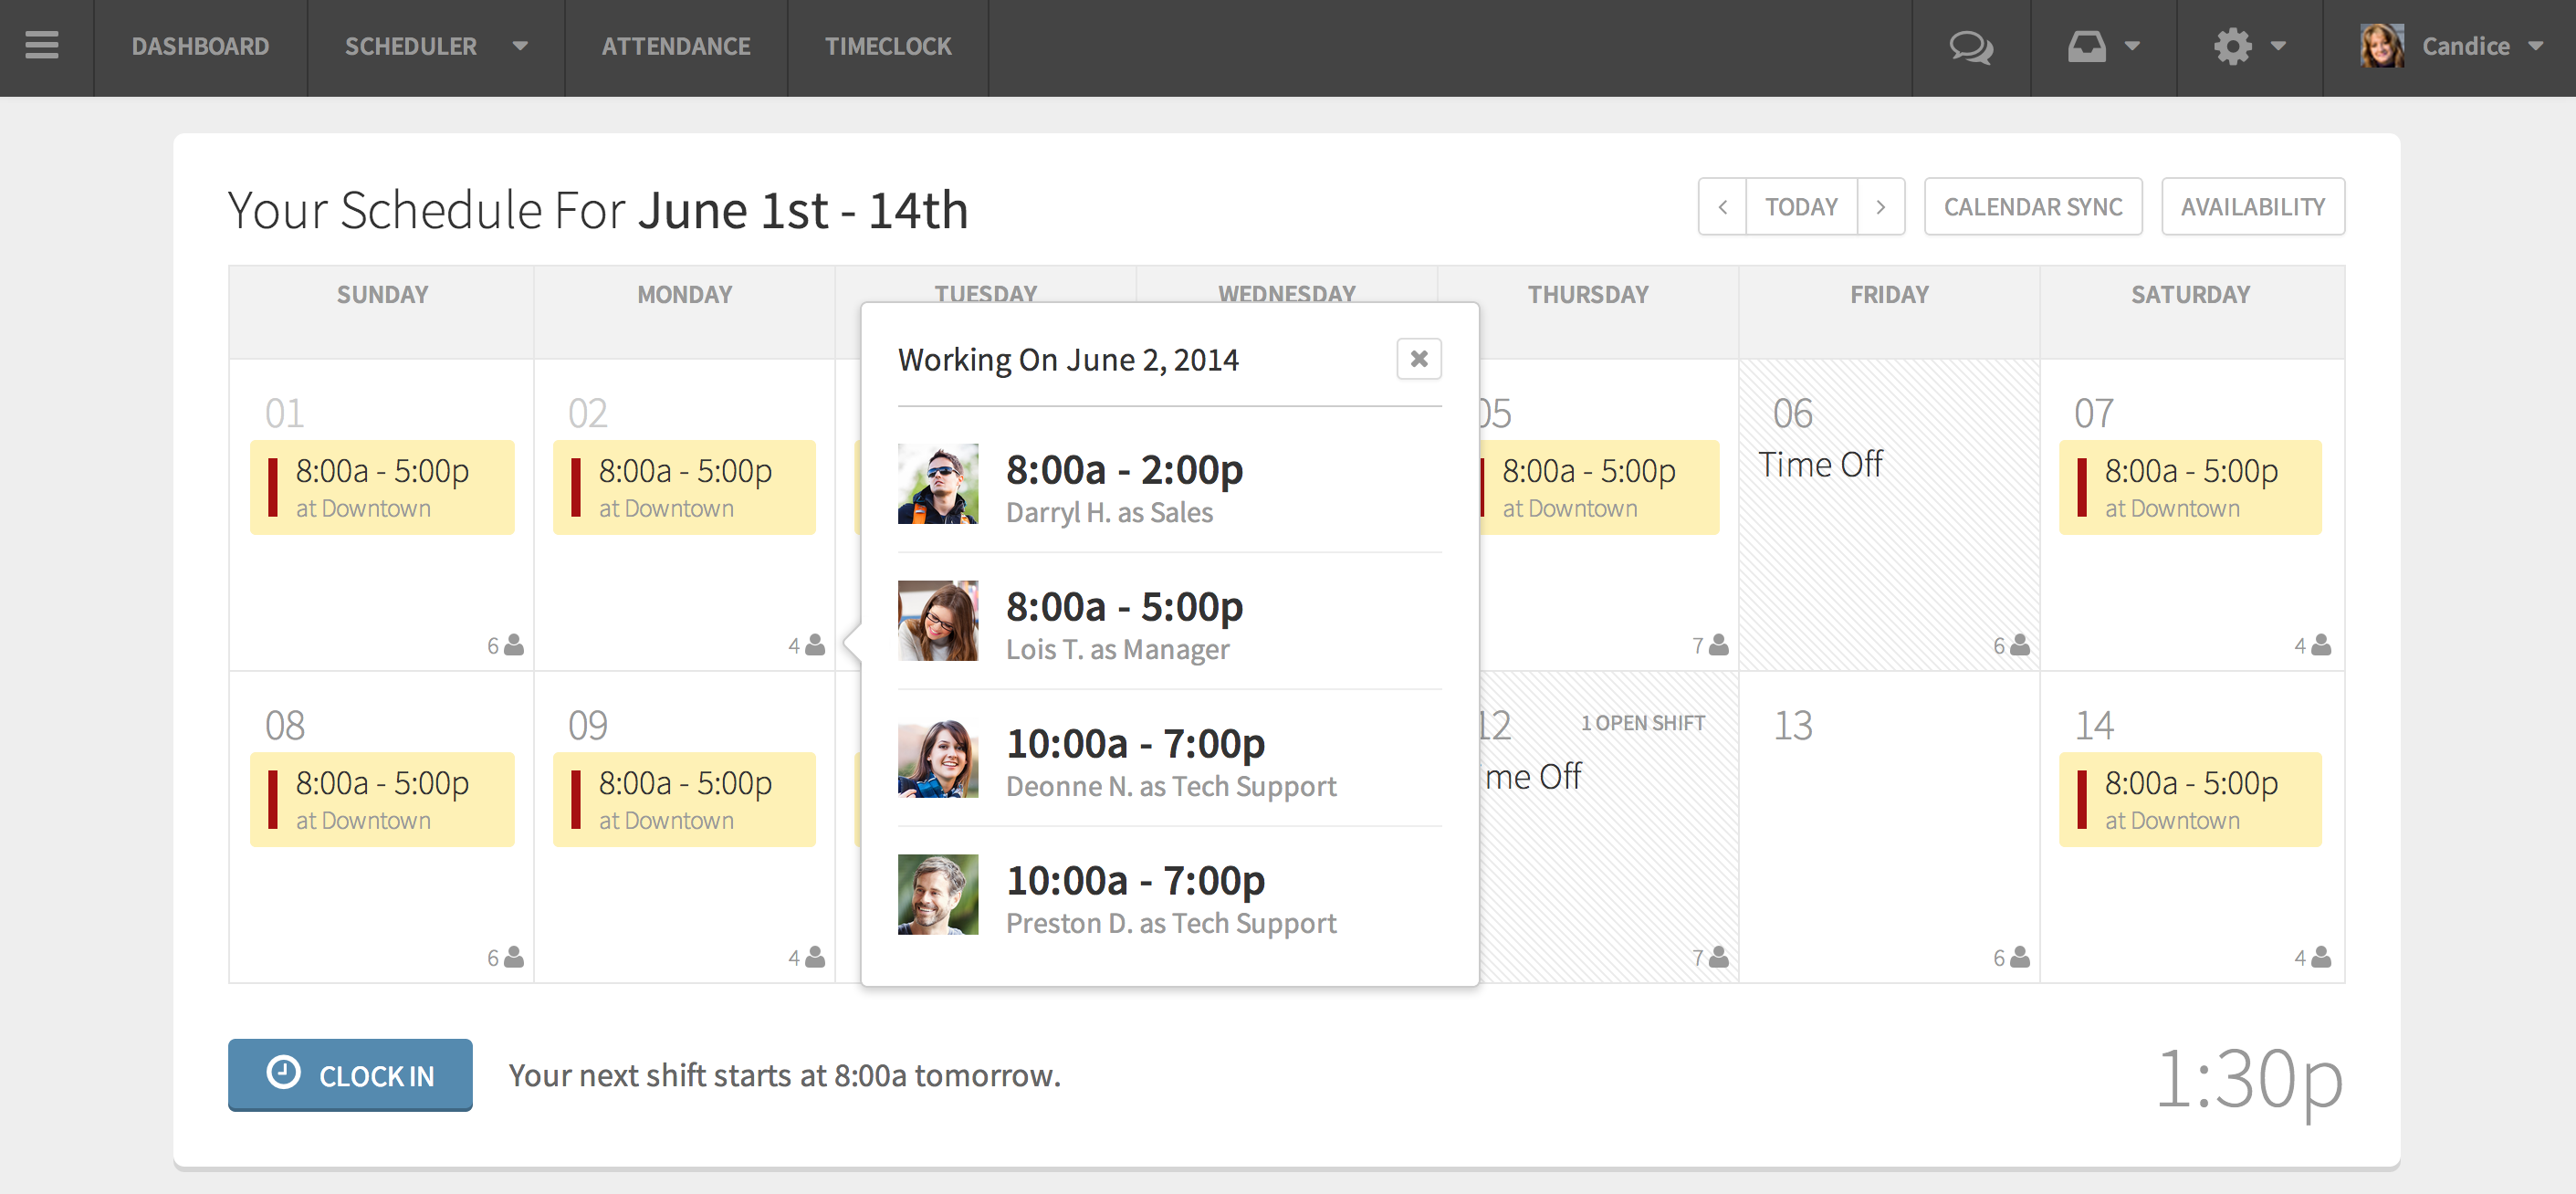 Employee Scheduling Software Screenshot - When I Work - See who's working with you